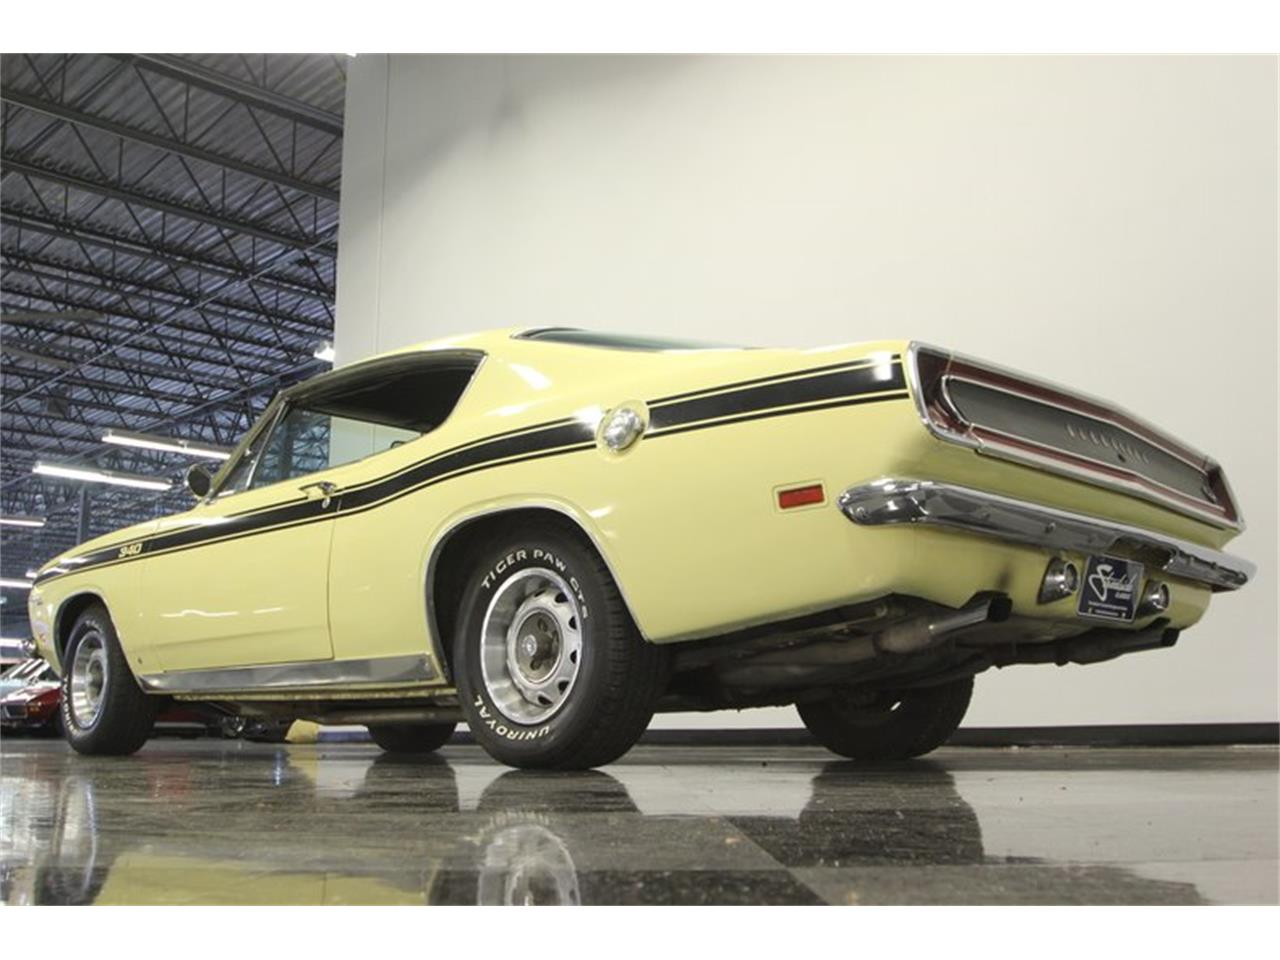 Large Picture of 1969 Barracuda located in Lutz Florida - $32,995.00 - PXAO